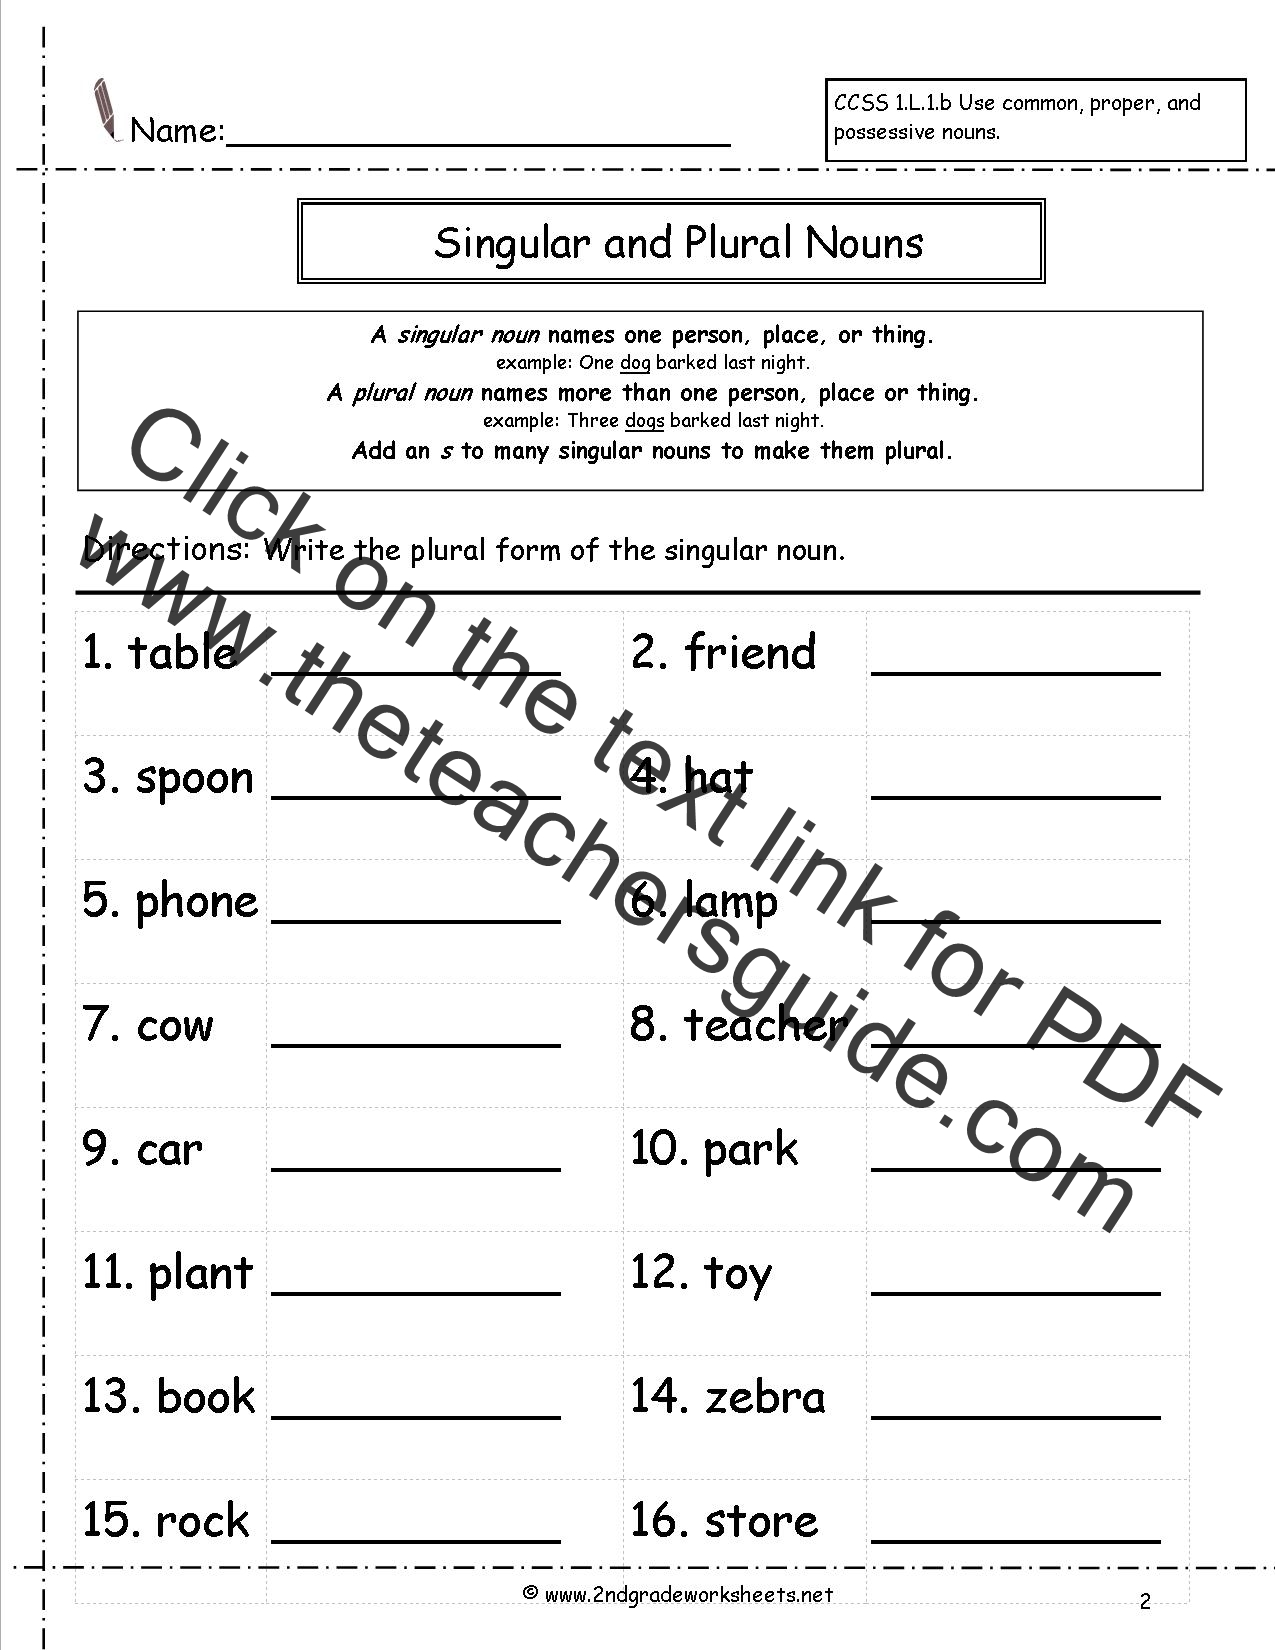 Singular Plural Nouns Worksheets 2nd Grade